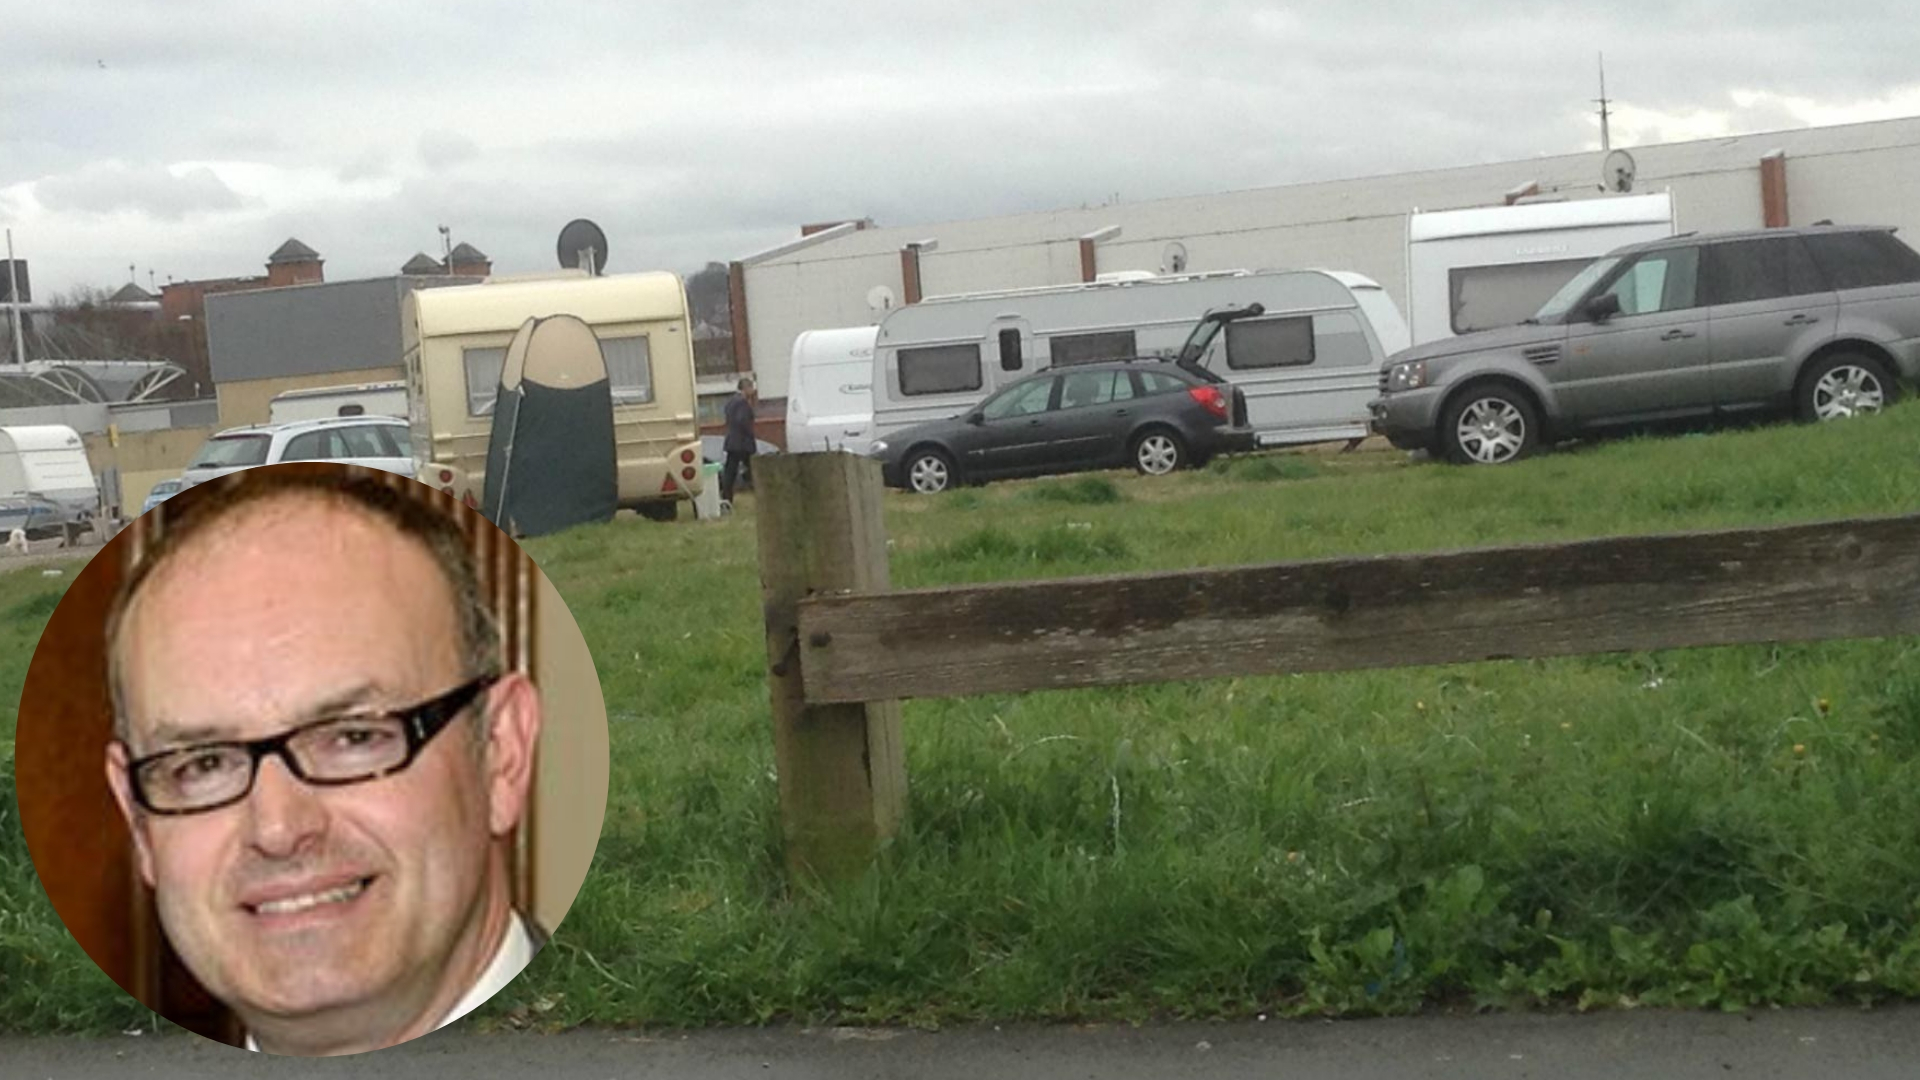 Cllr David Burgess-Joyce (left) and one of the recent traveller encampments in Birkenhead (Picture: Craig Manning)